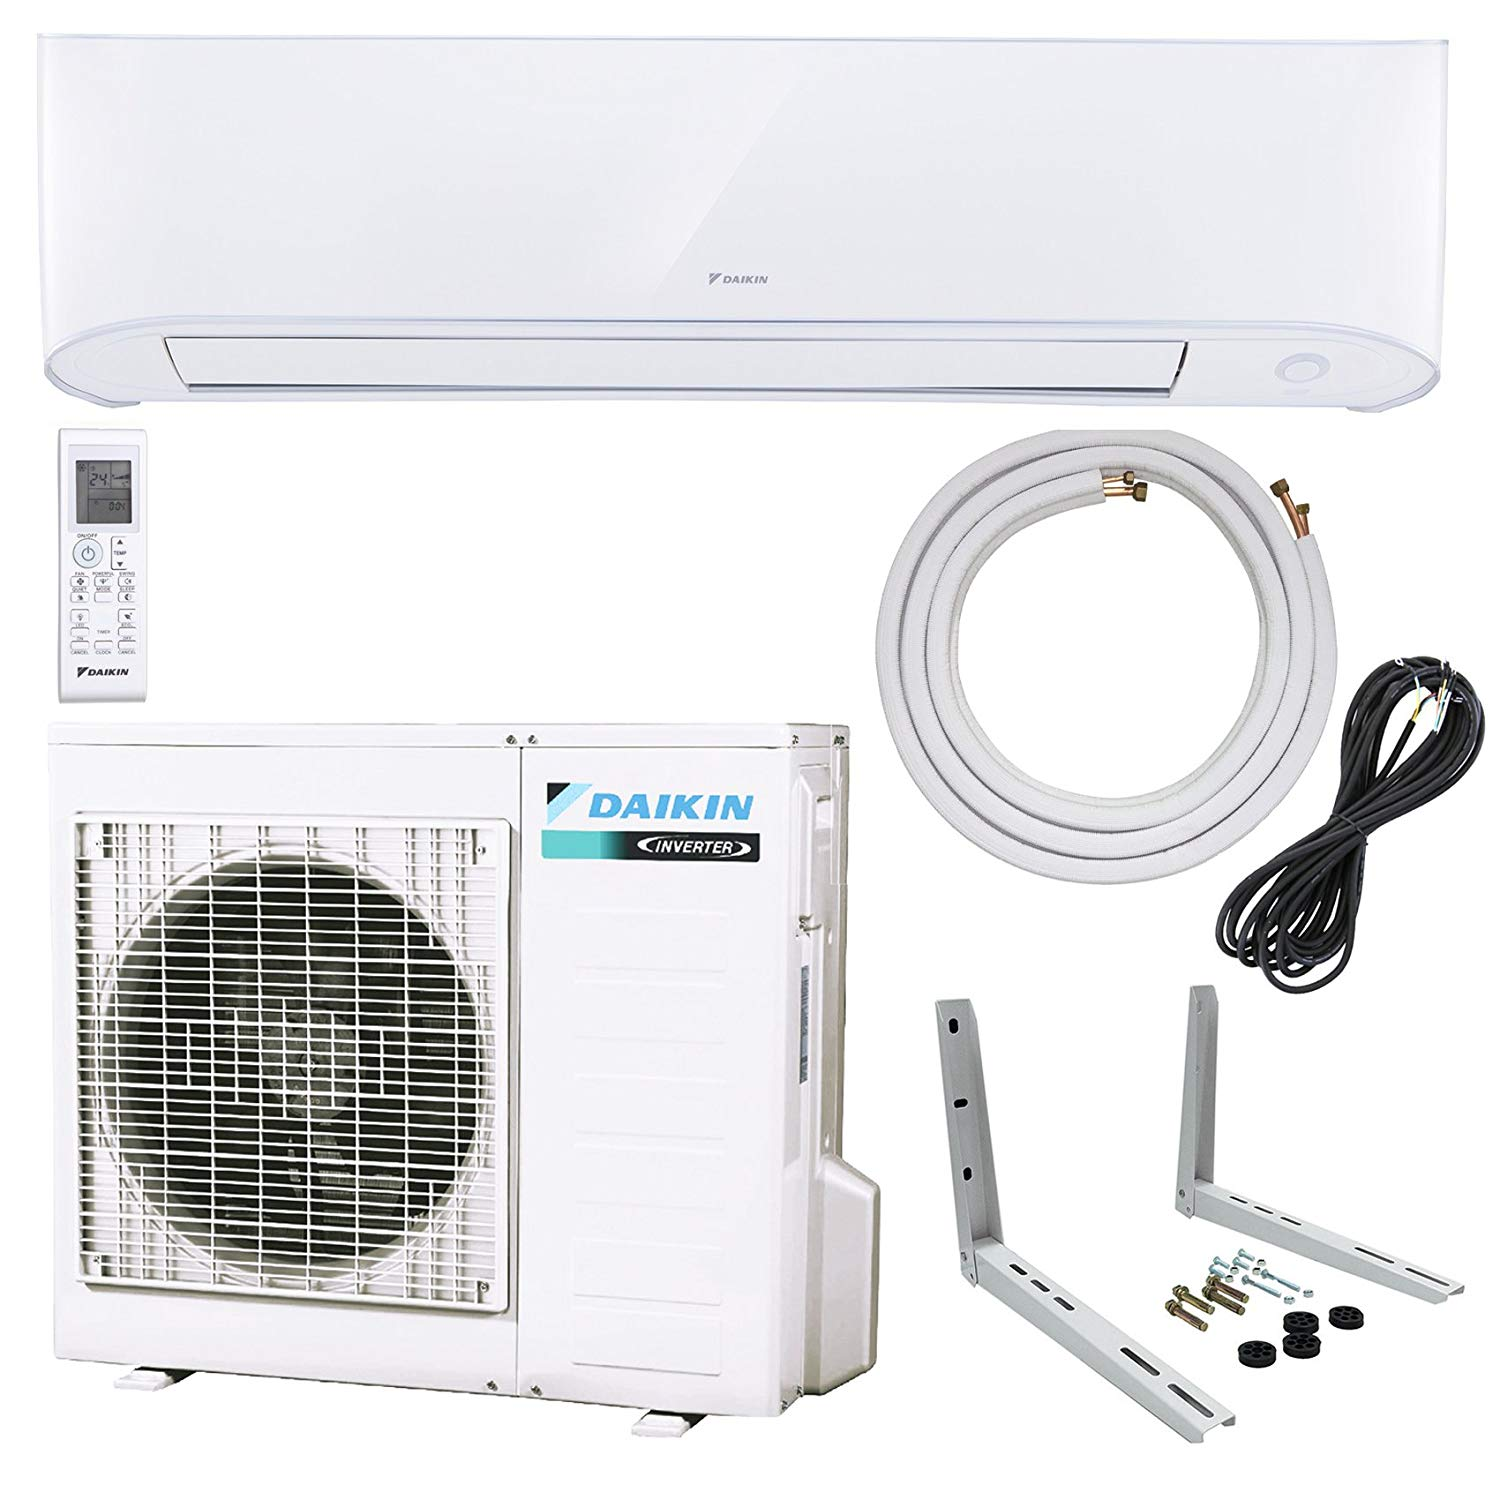 2457cd4b9 Daikin 17 Series Single Zone Wall-Mount Mini Splits – 17 SEER Select from 9000  BTU to 24000 BTU with Heat Pump – Includes Line Set and Bracket